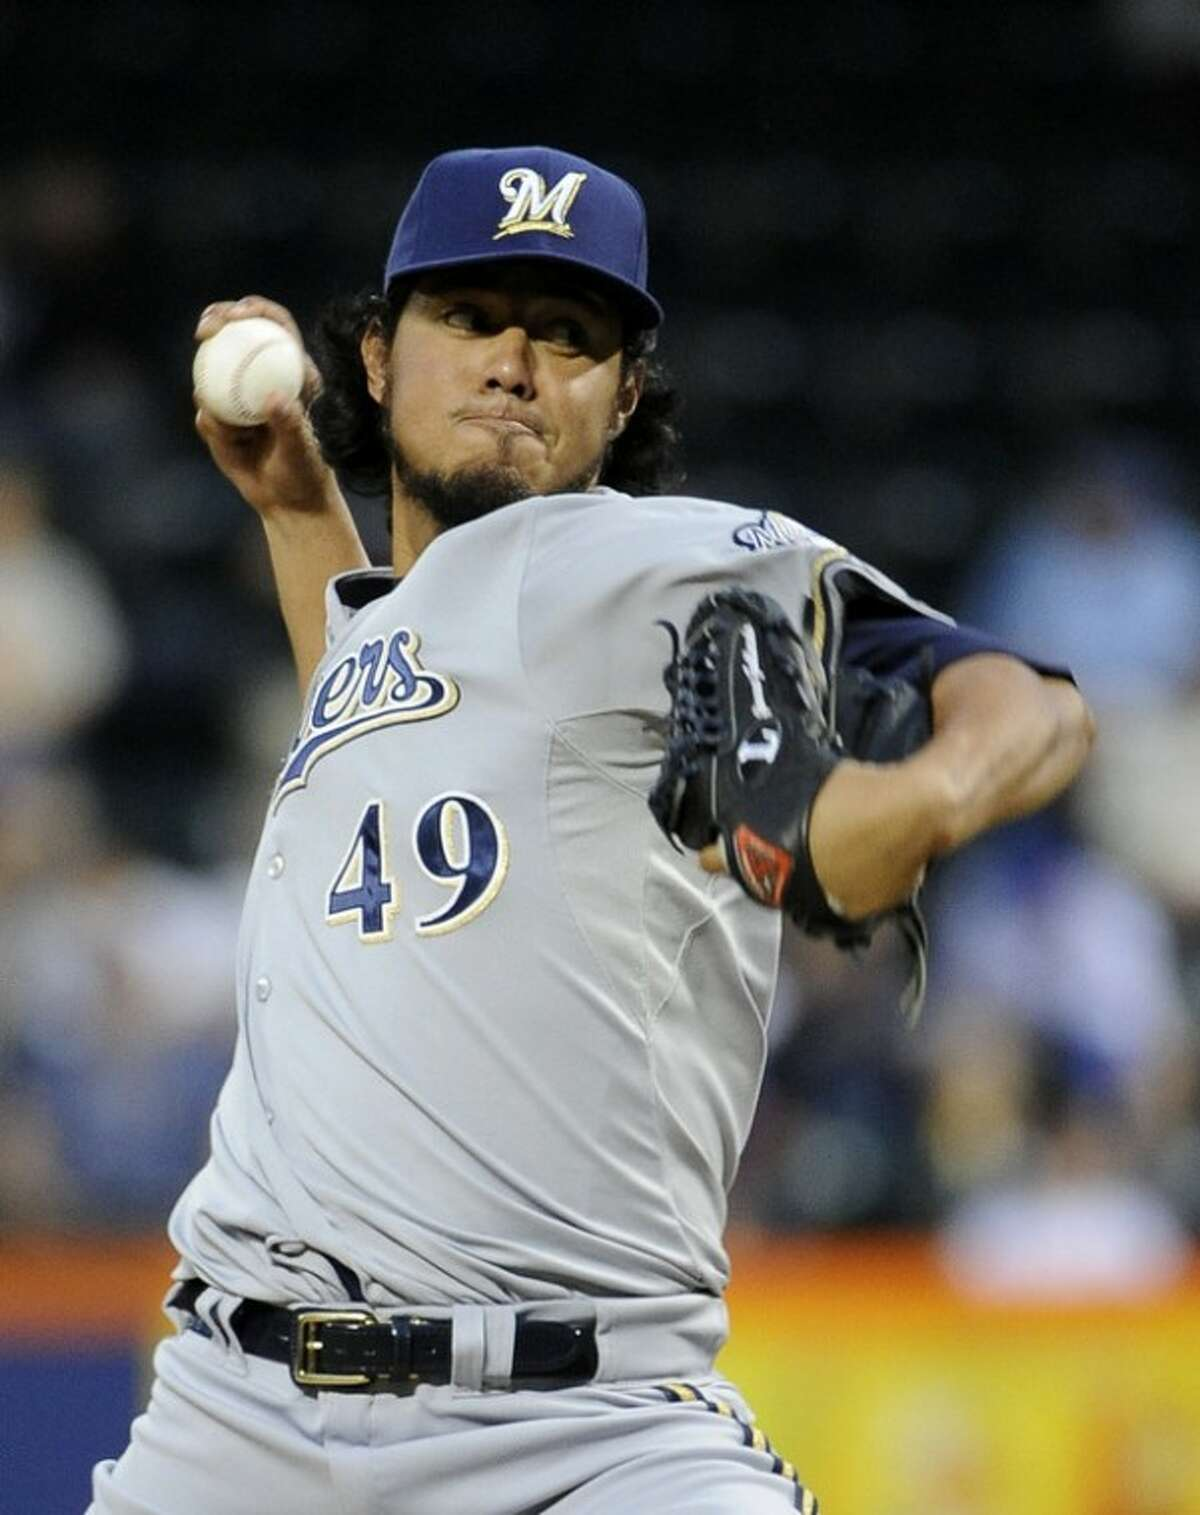 Milwaukee Brewers starting pitcher Yovani Gallardo throws against the New York Mets in the first inning of a baseball game on Monday, May 14, 2012, at Citi Field in New York. (AP Photo/Kathy Kmonicek)